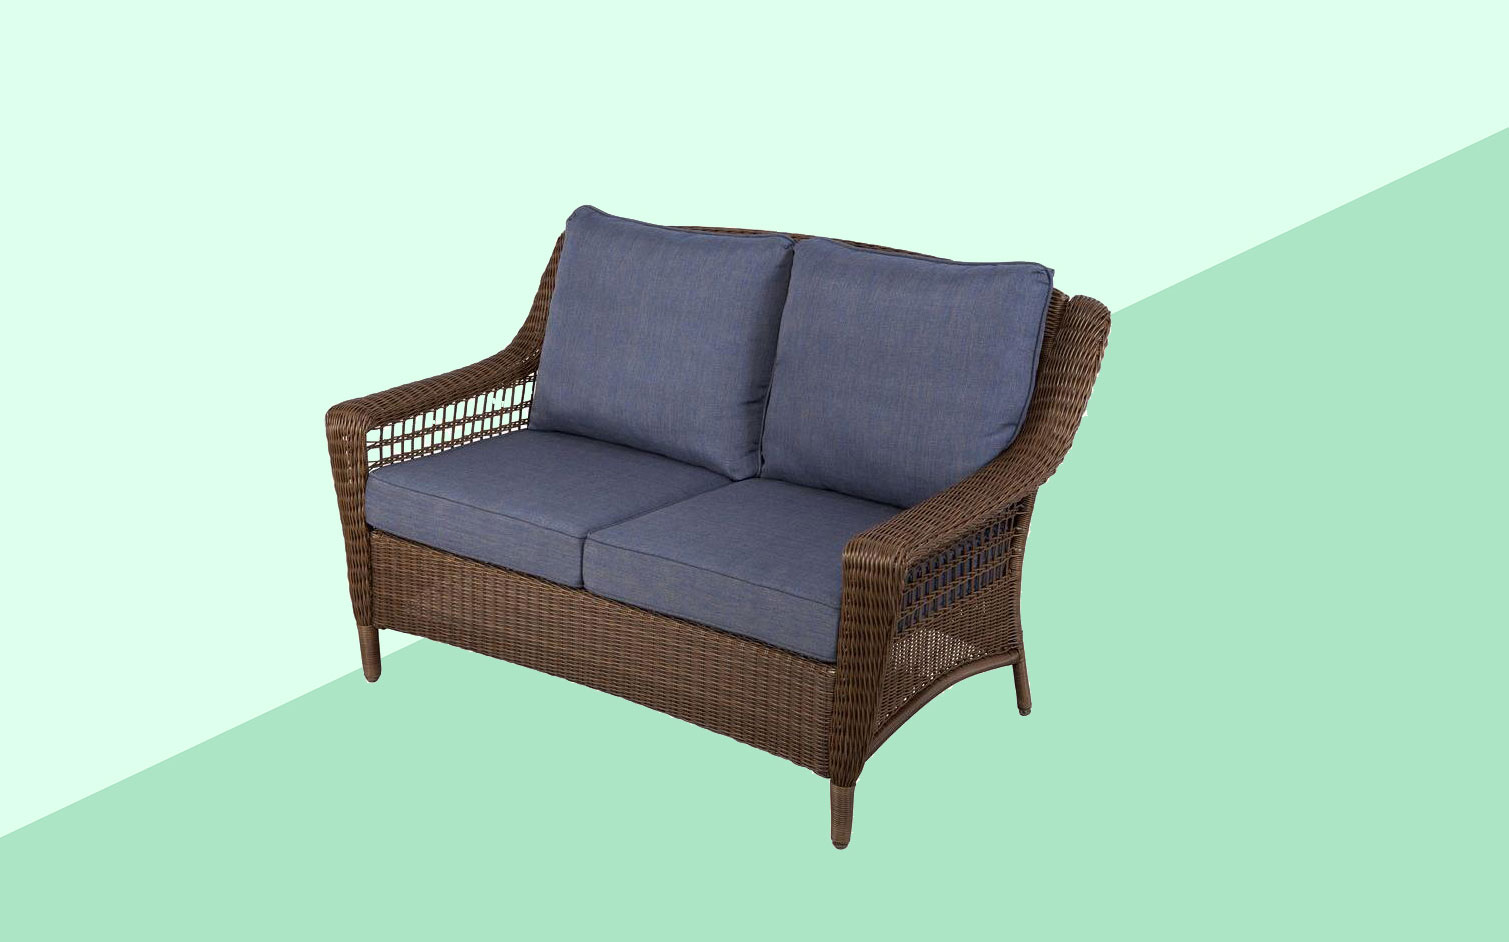 The Best Places To Outdoor Furniture Online Real Simple